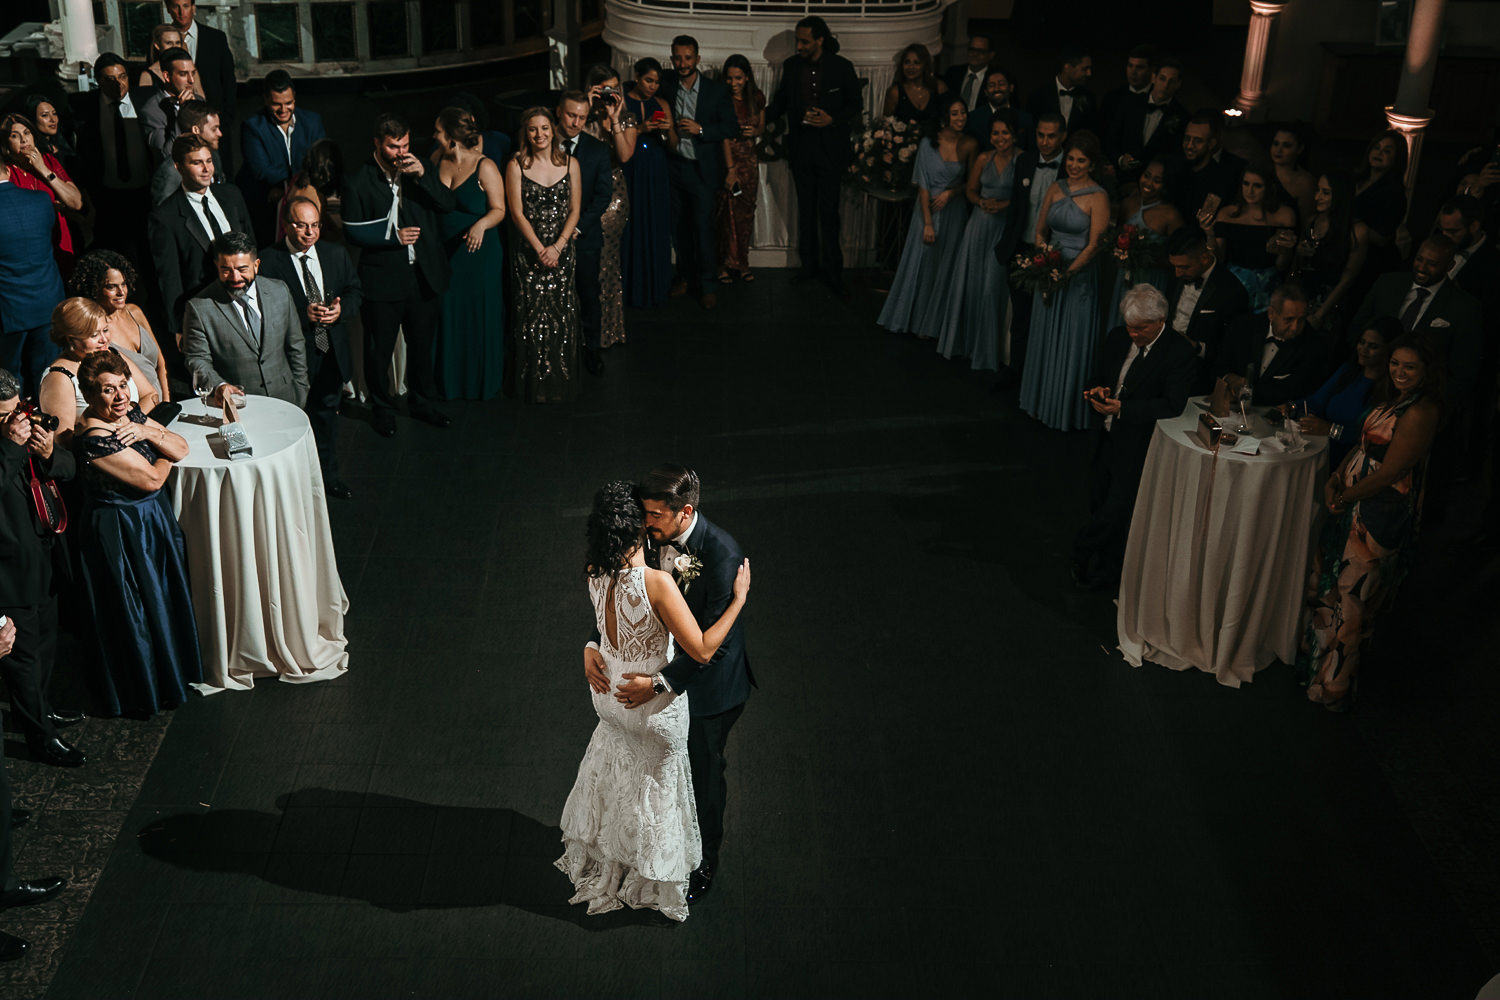 newlyweds hugging middle of dance floor during first dance